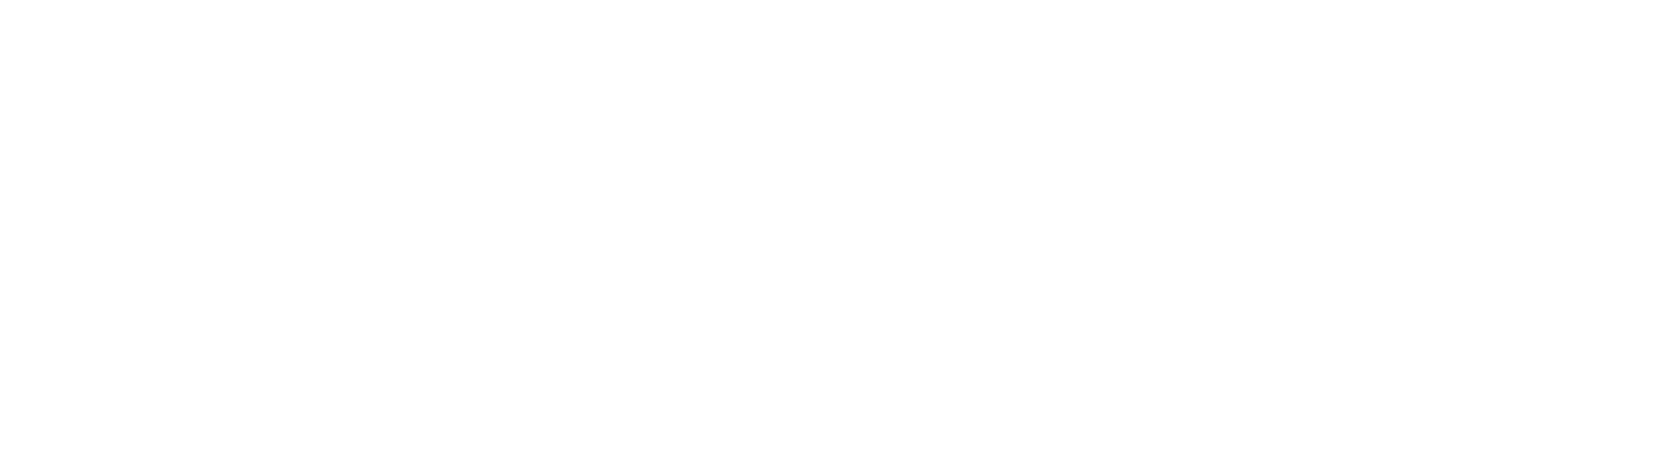 f-secure_horizontal_logo_rgb_white